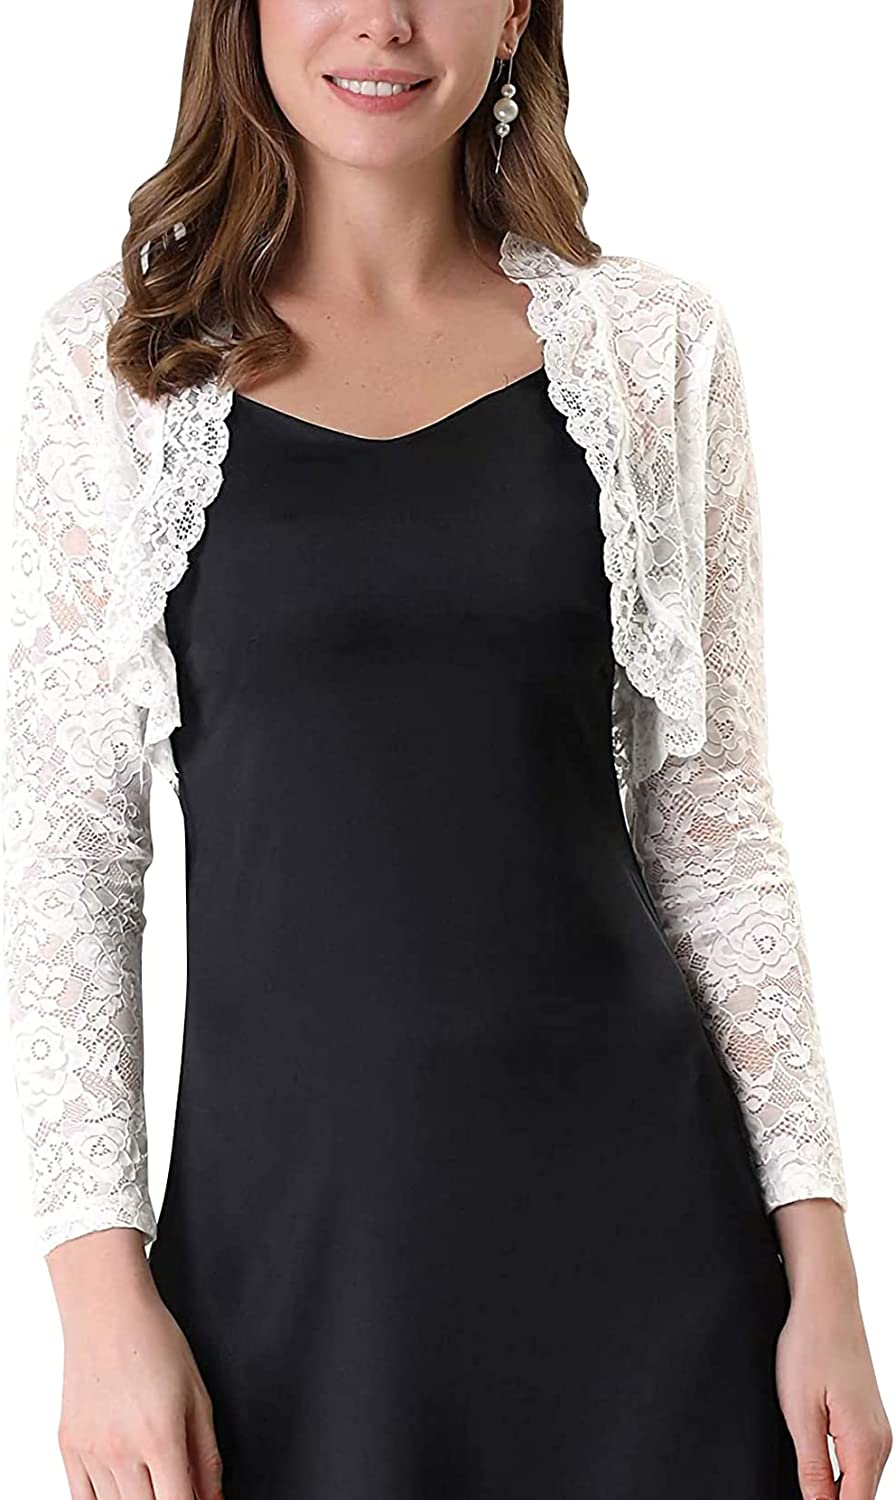 Women Long Sleeve Lace Bolero Crop Cardigan Vintage Floral See Through Shrug Top Y2k Open Front Cropped Sheer T-Shirt